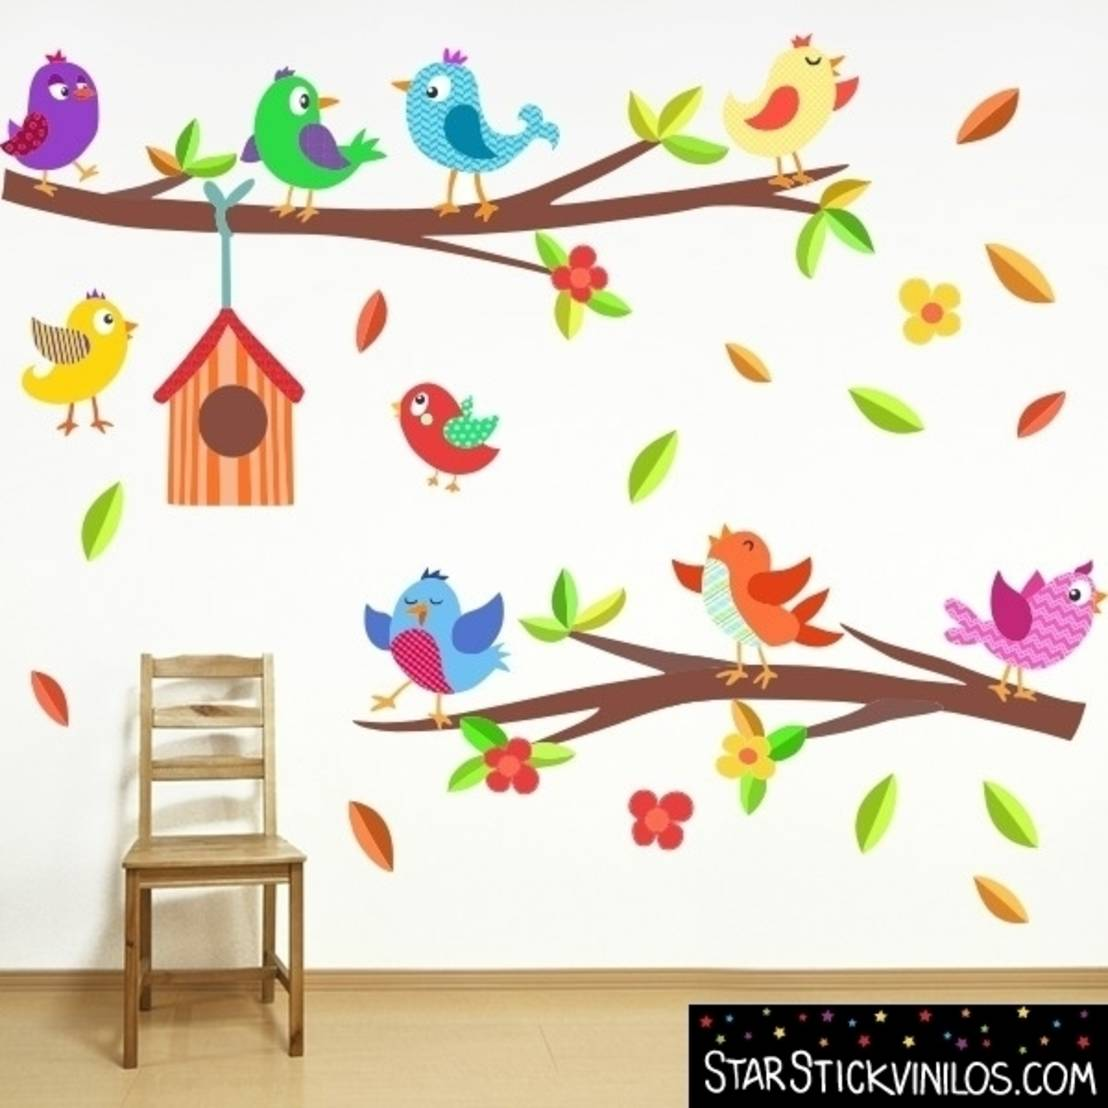 Murales infantiles ideas que dan vida a las paredes for Ideas para decorar paredes infantiles